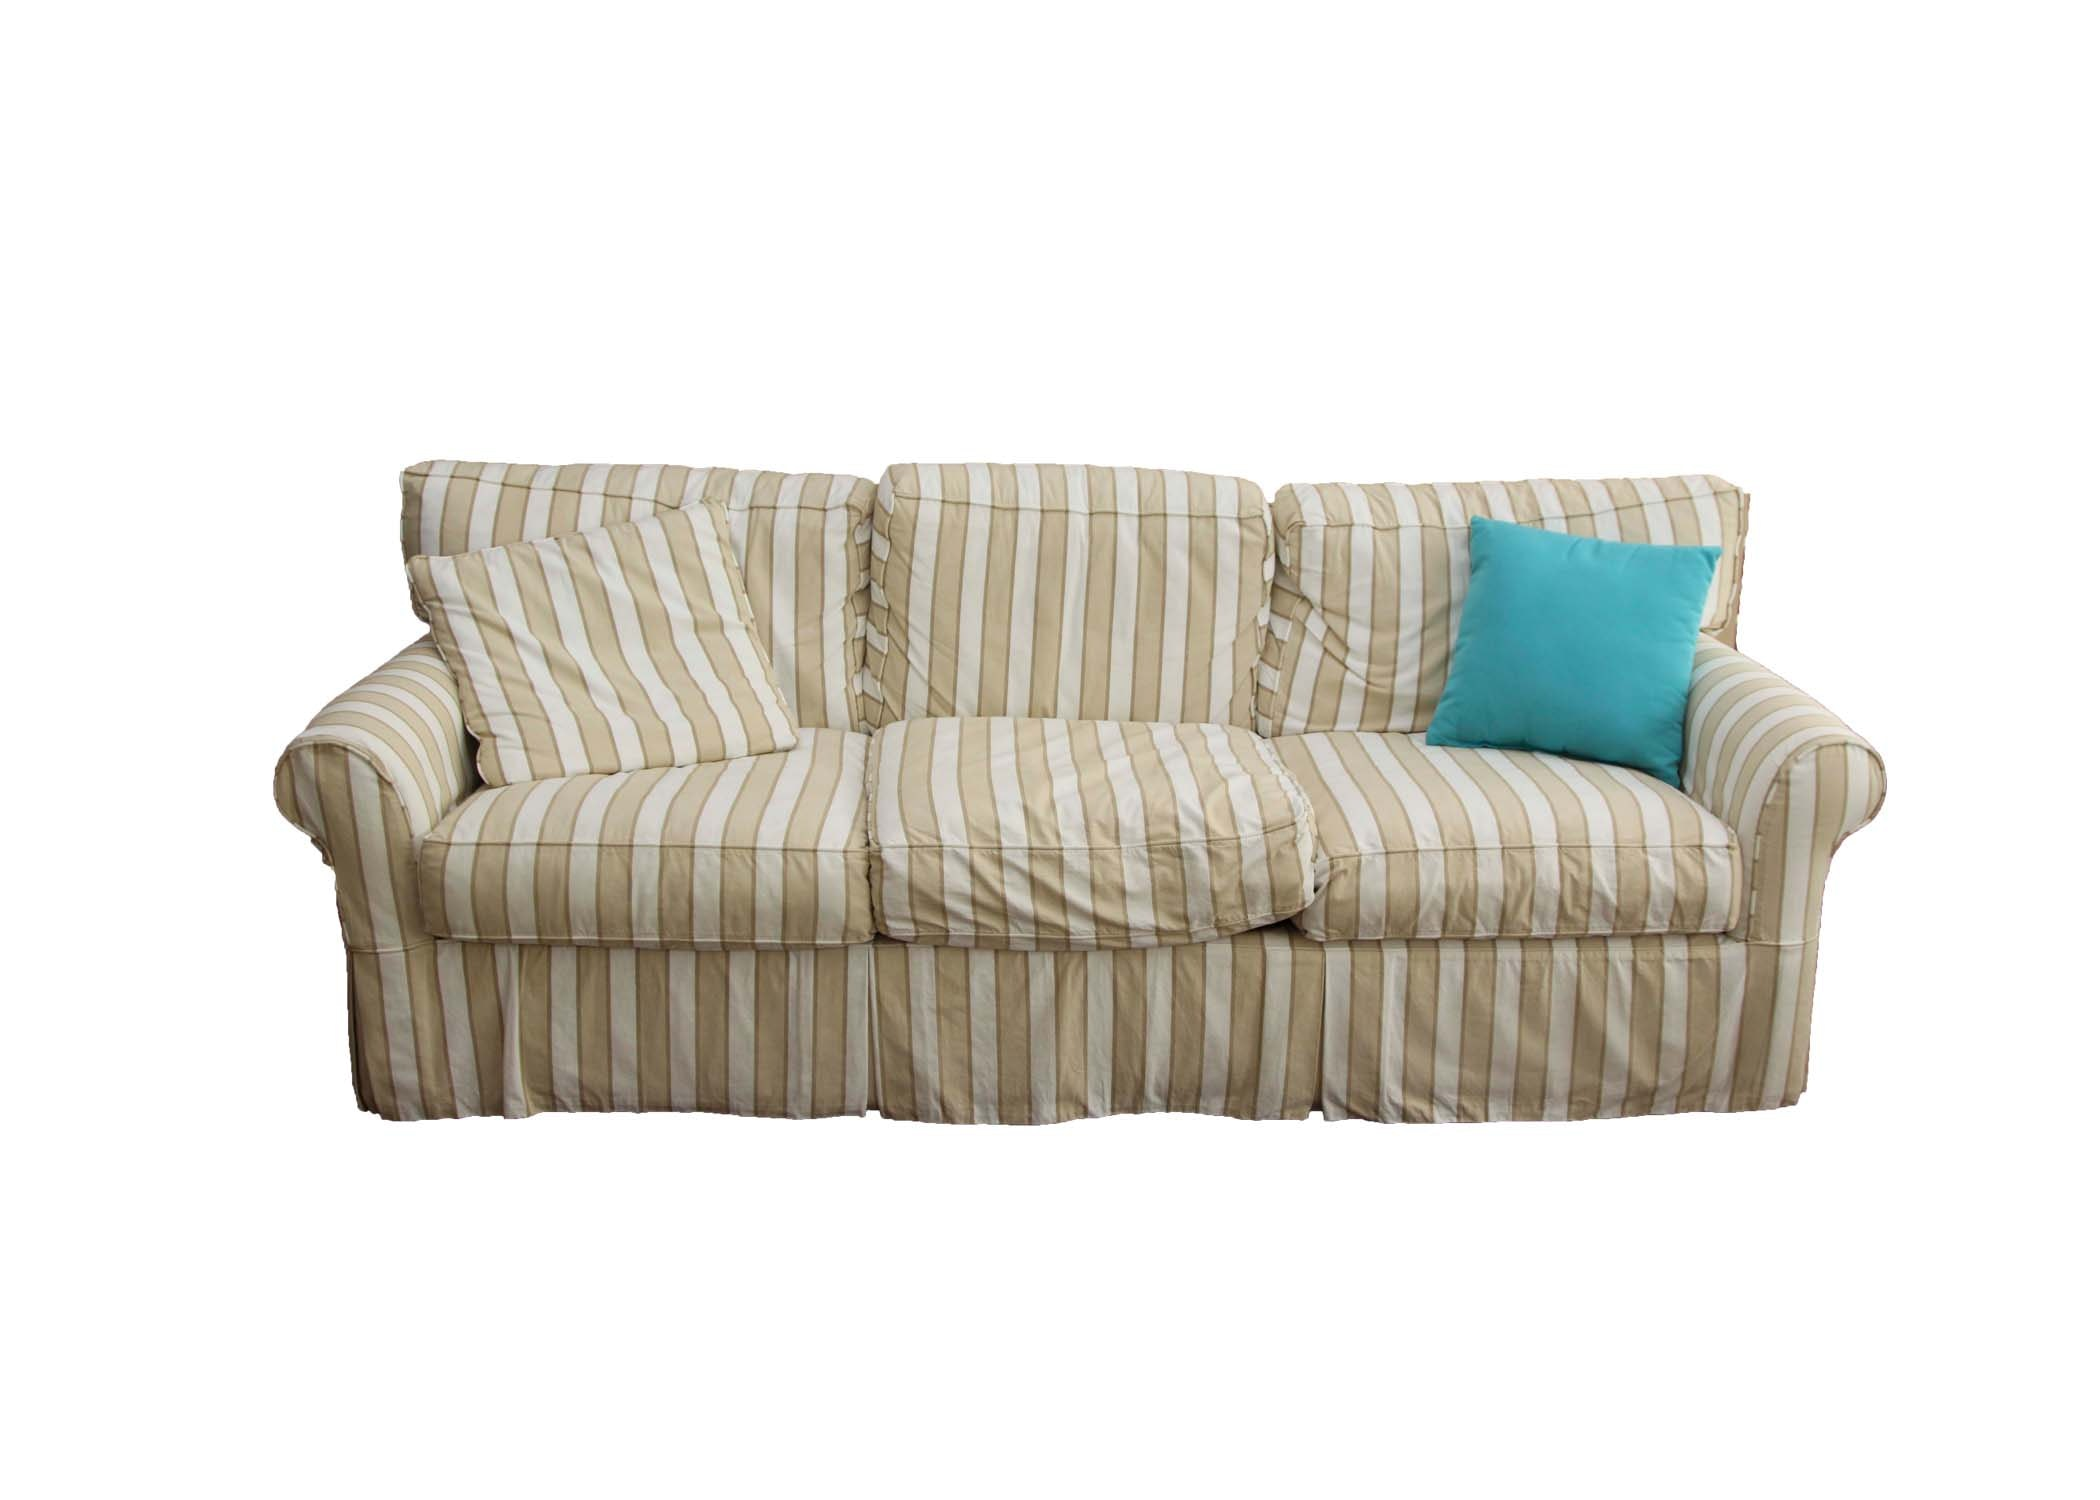 Camden Collection Sofa with Slip Cover